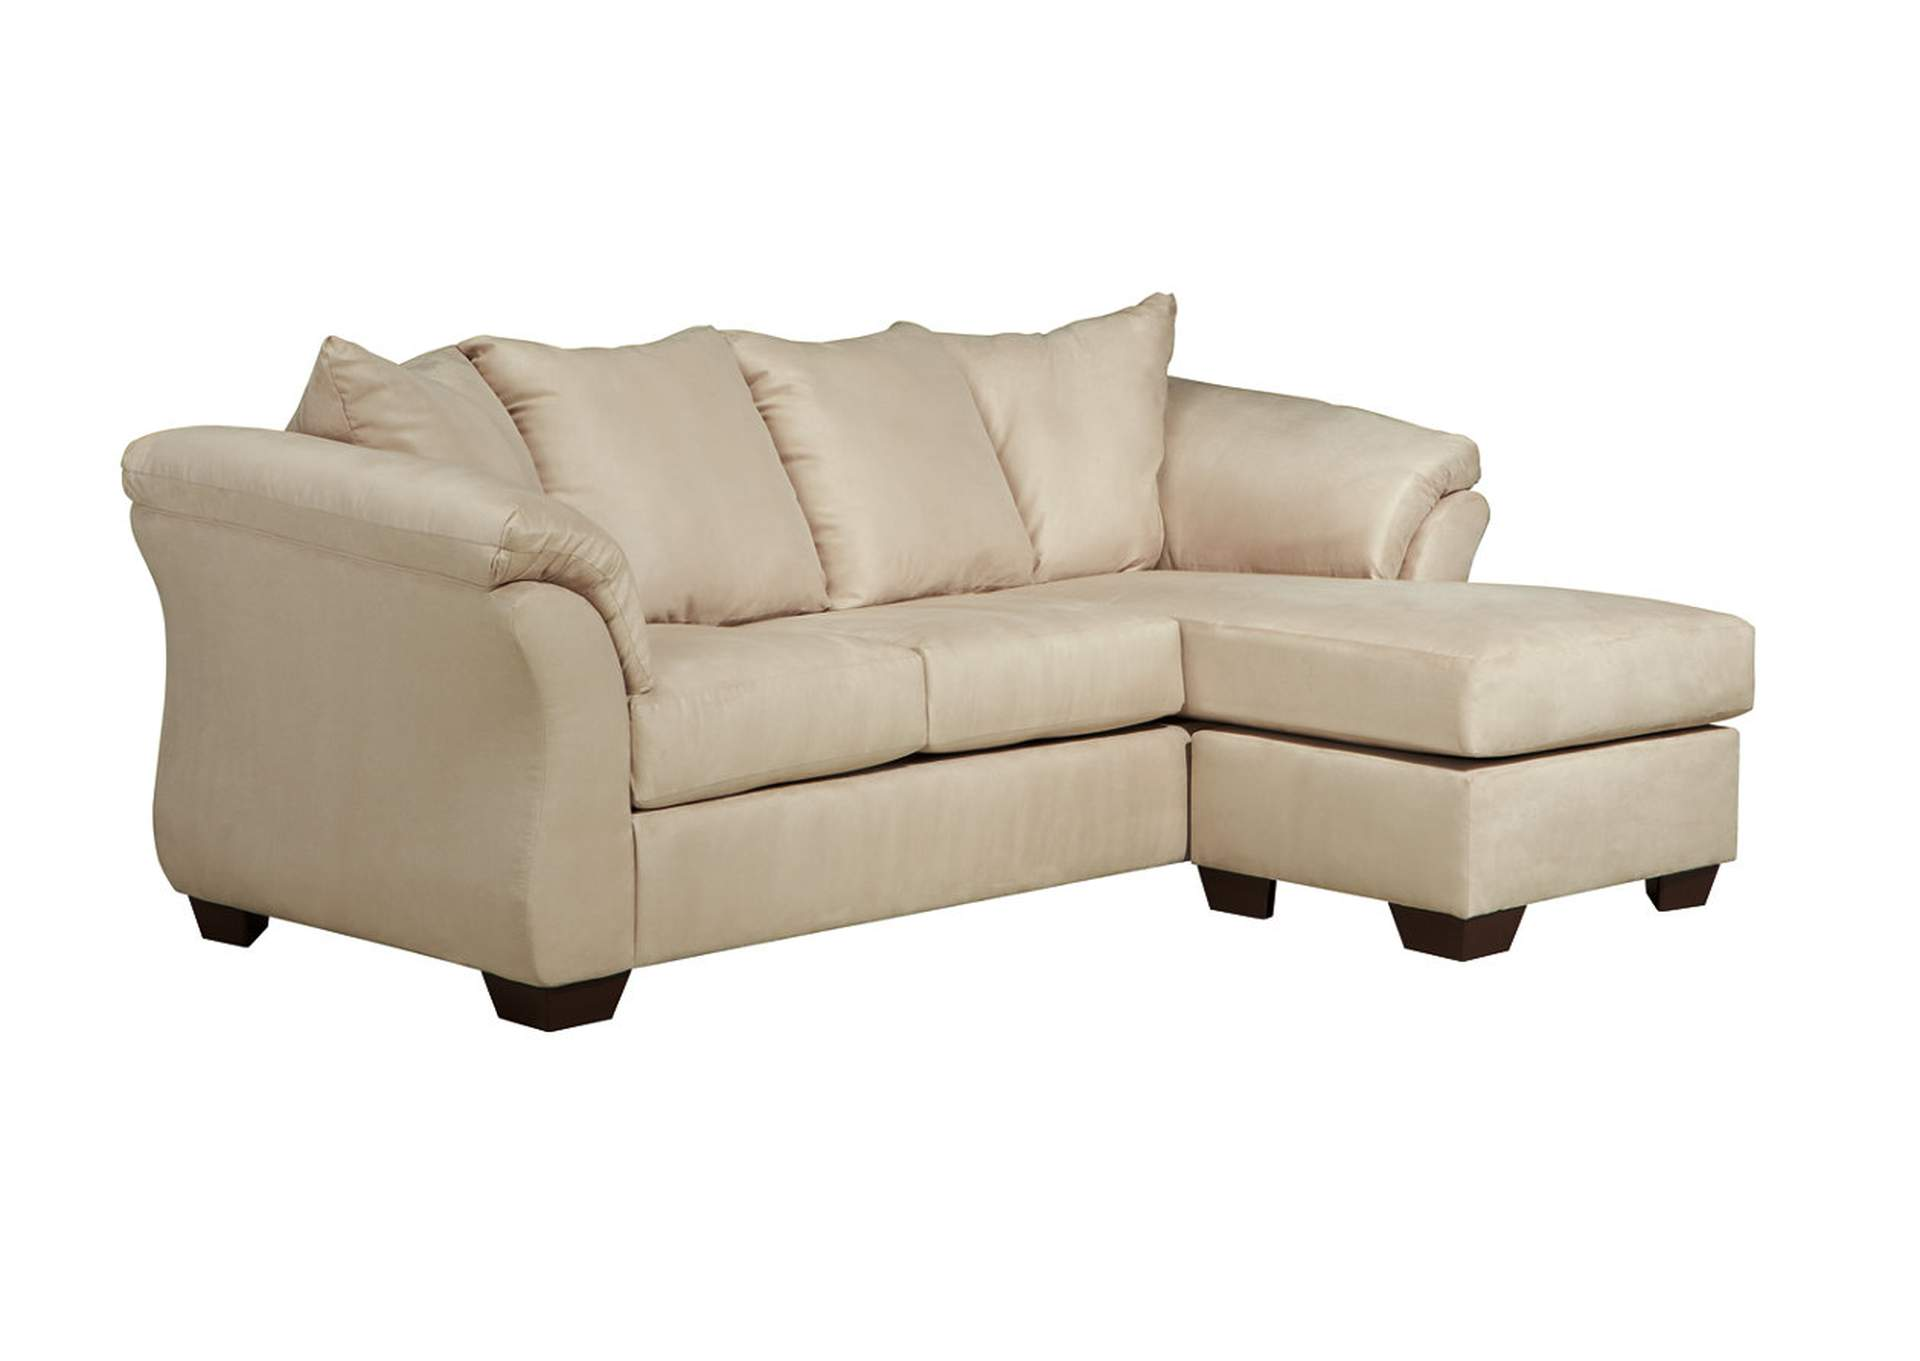 Affordable furniture houston darcy stone sofa chaise for Affordable chaise